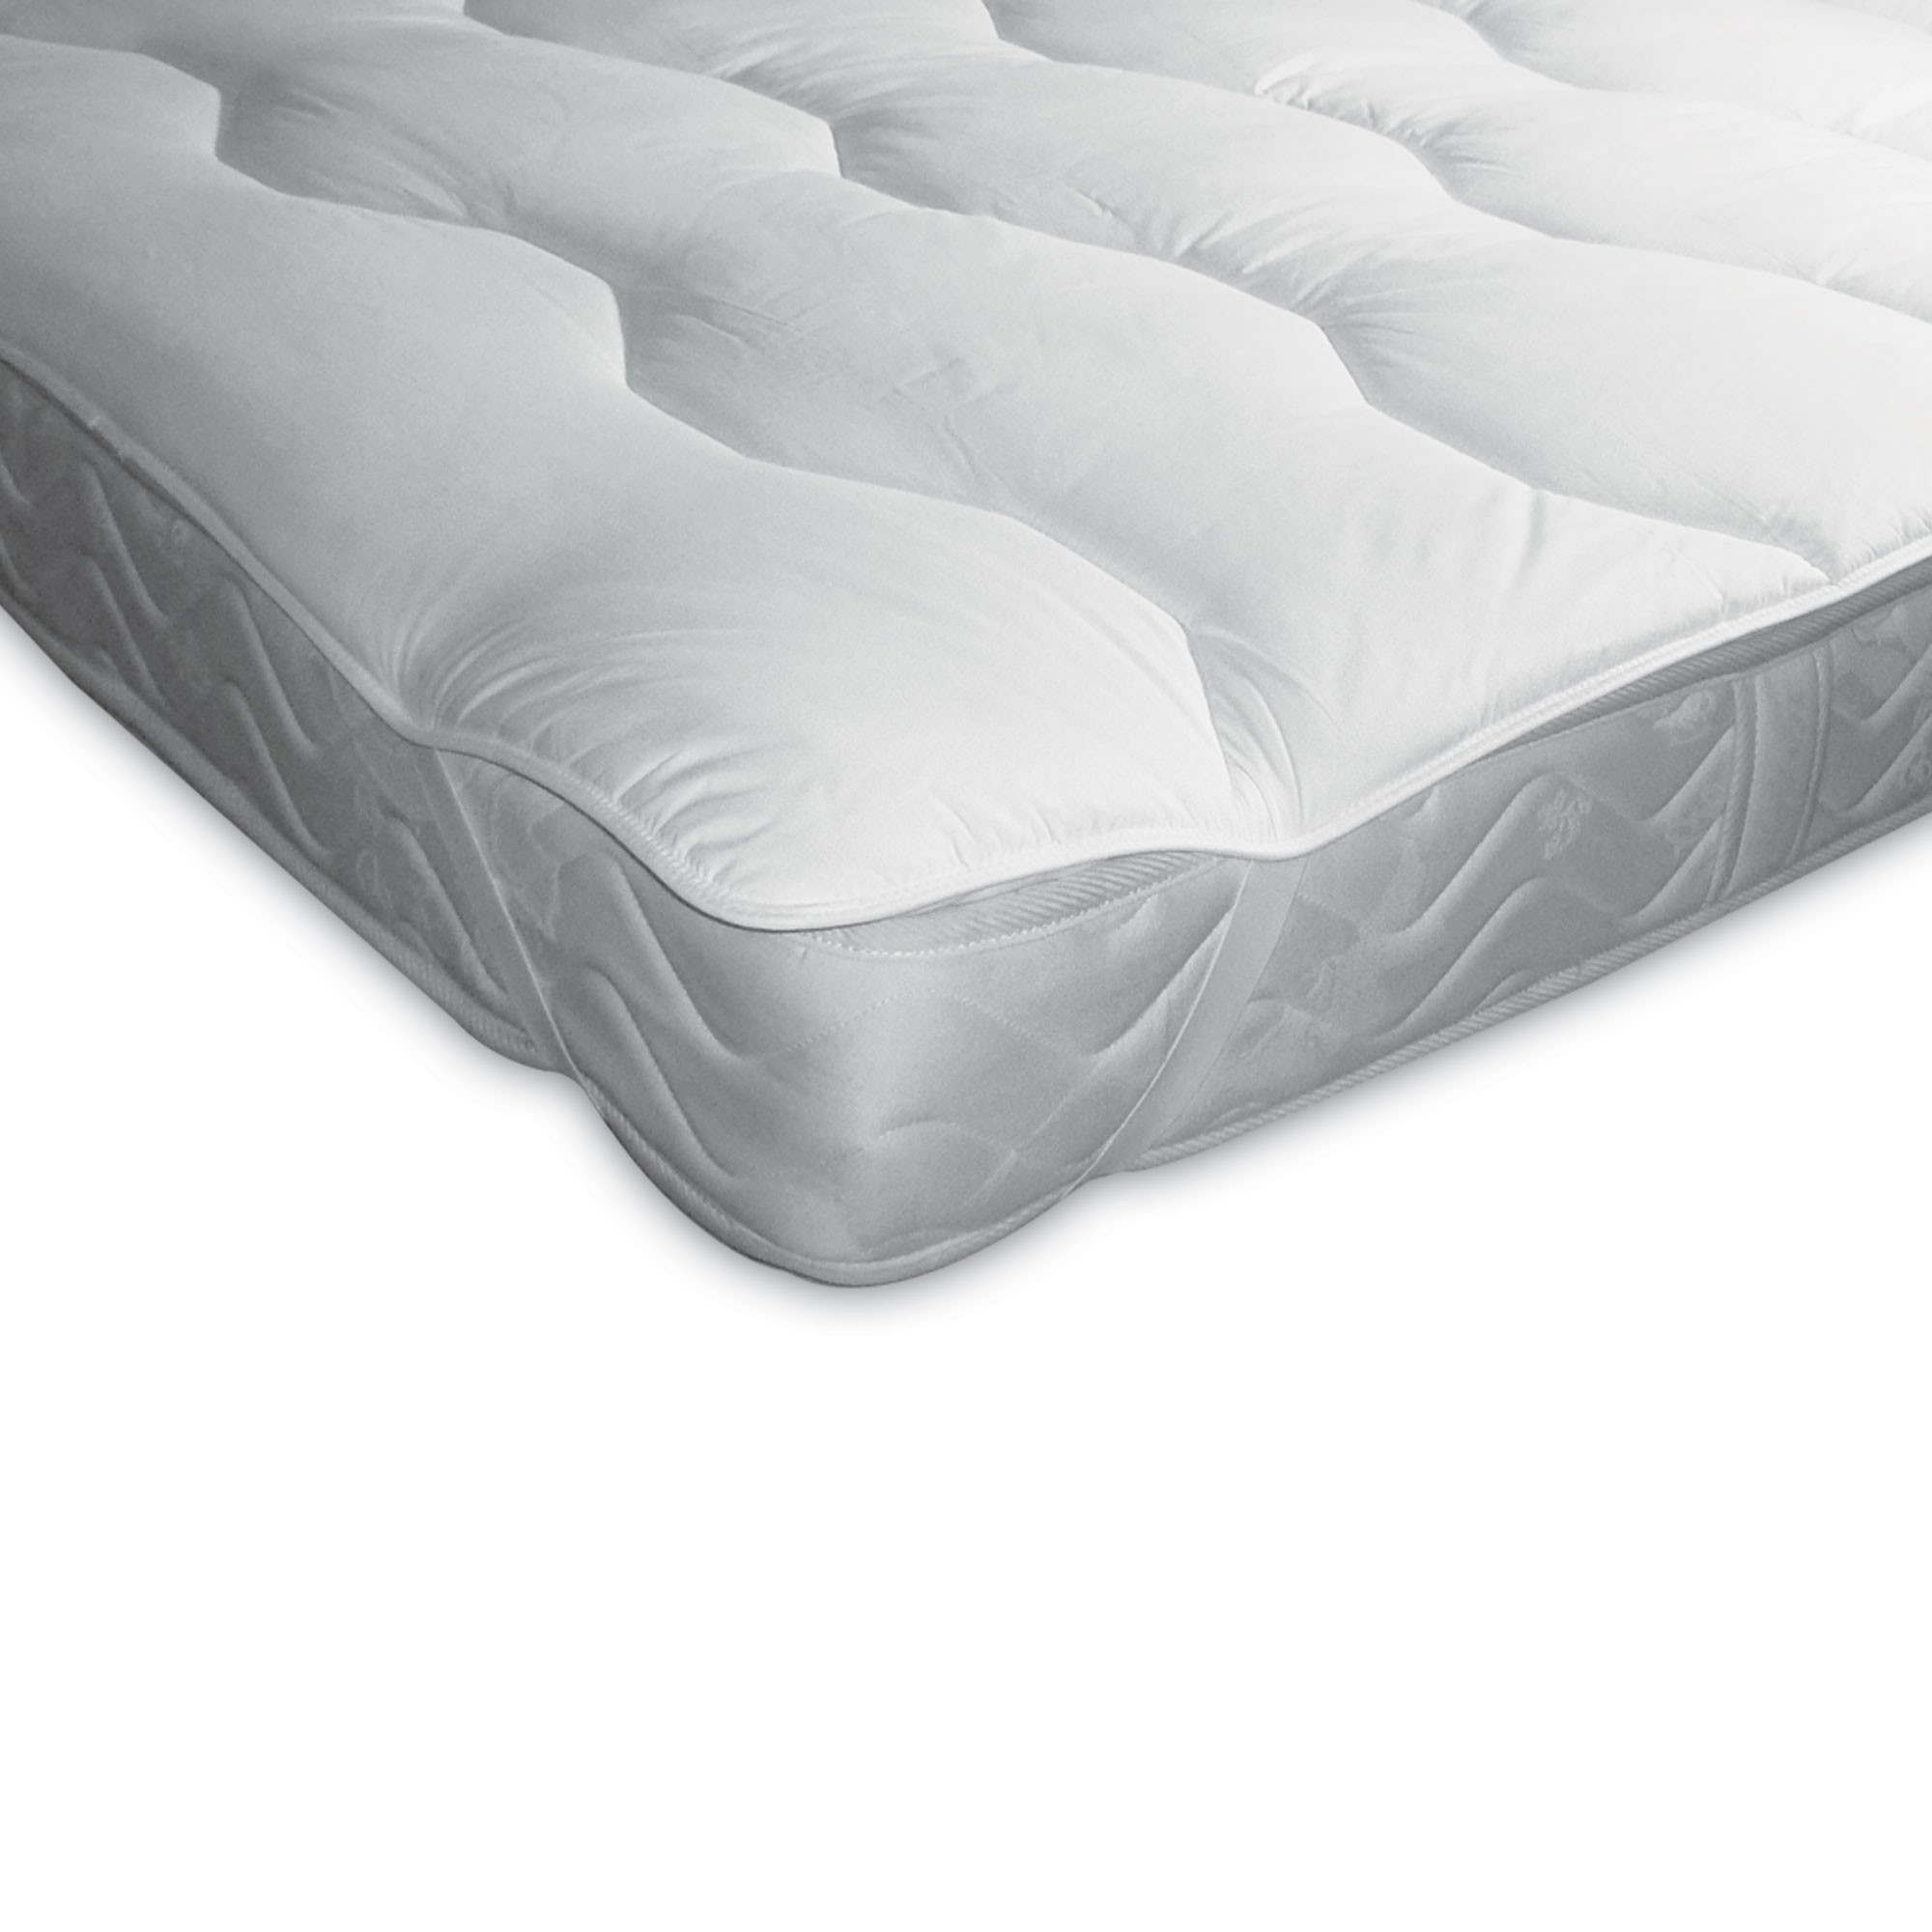 Surmatelas Grand Confort